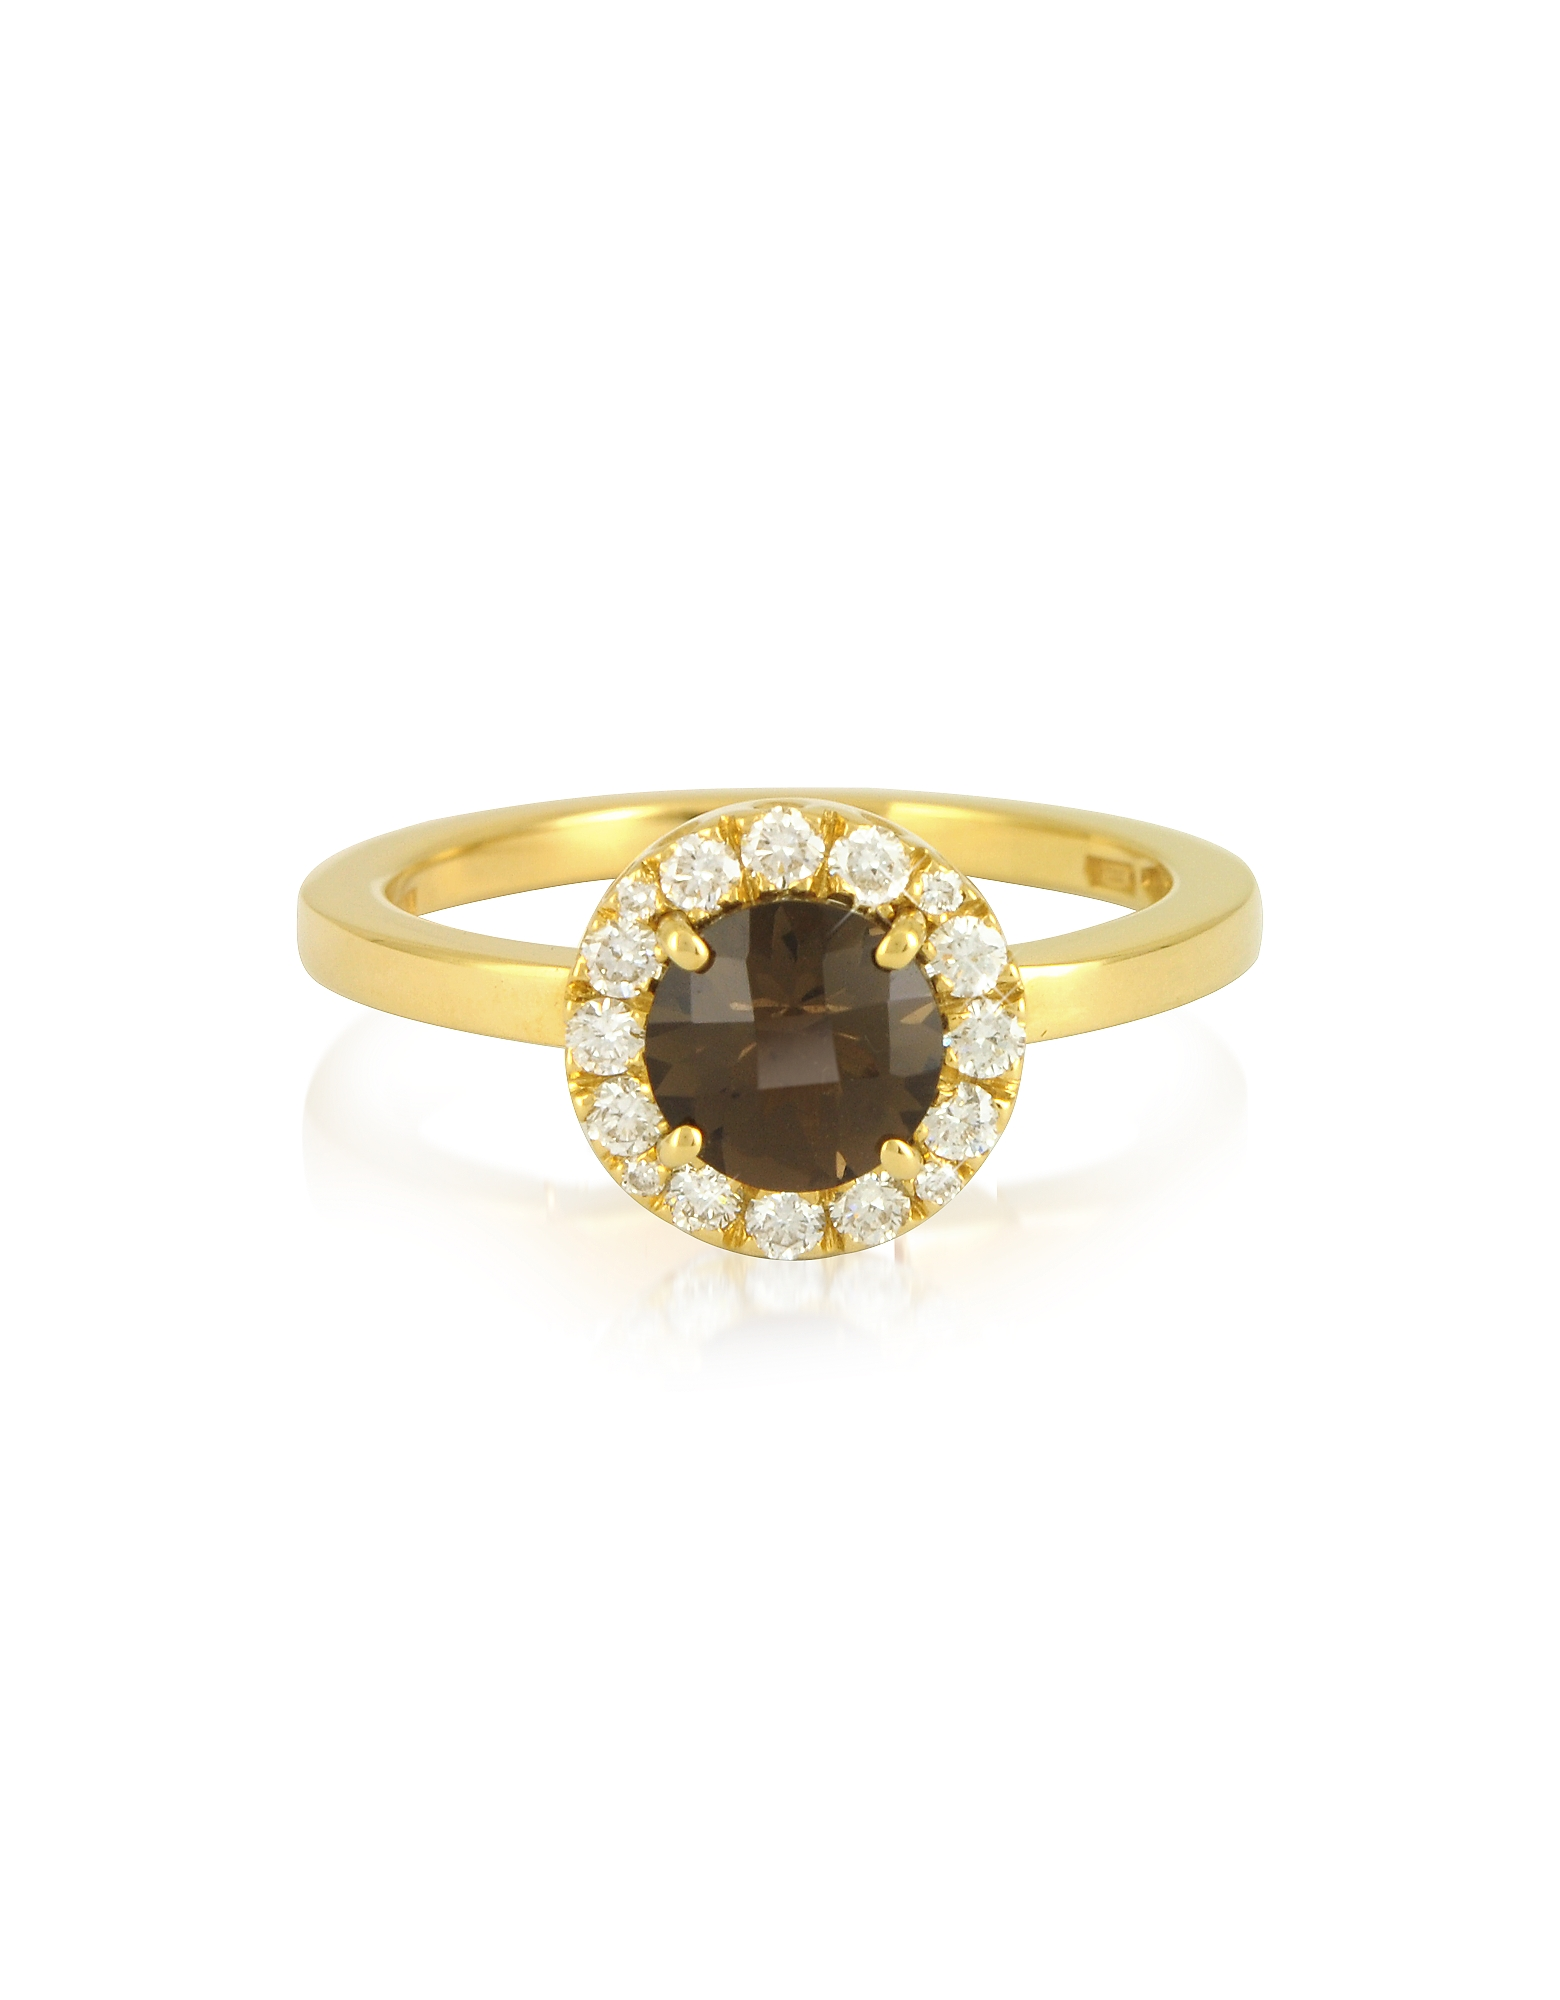 Forzieri Designer Rings, 0.24 ct Diamond Pave 18K Gold Ring w/ Smoky Quartz